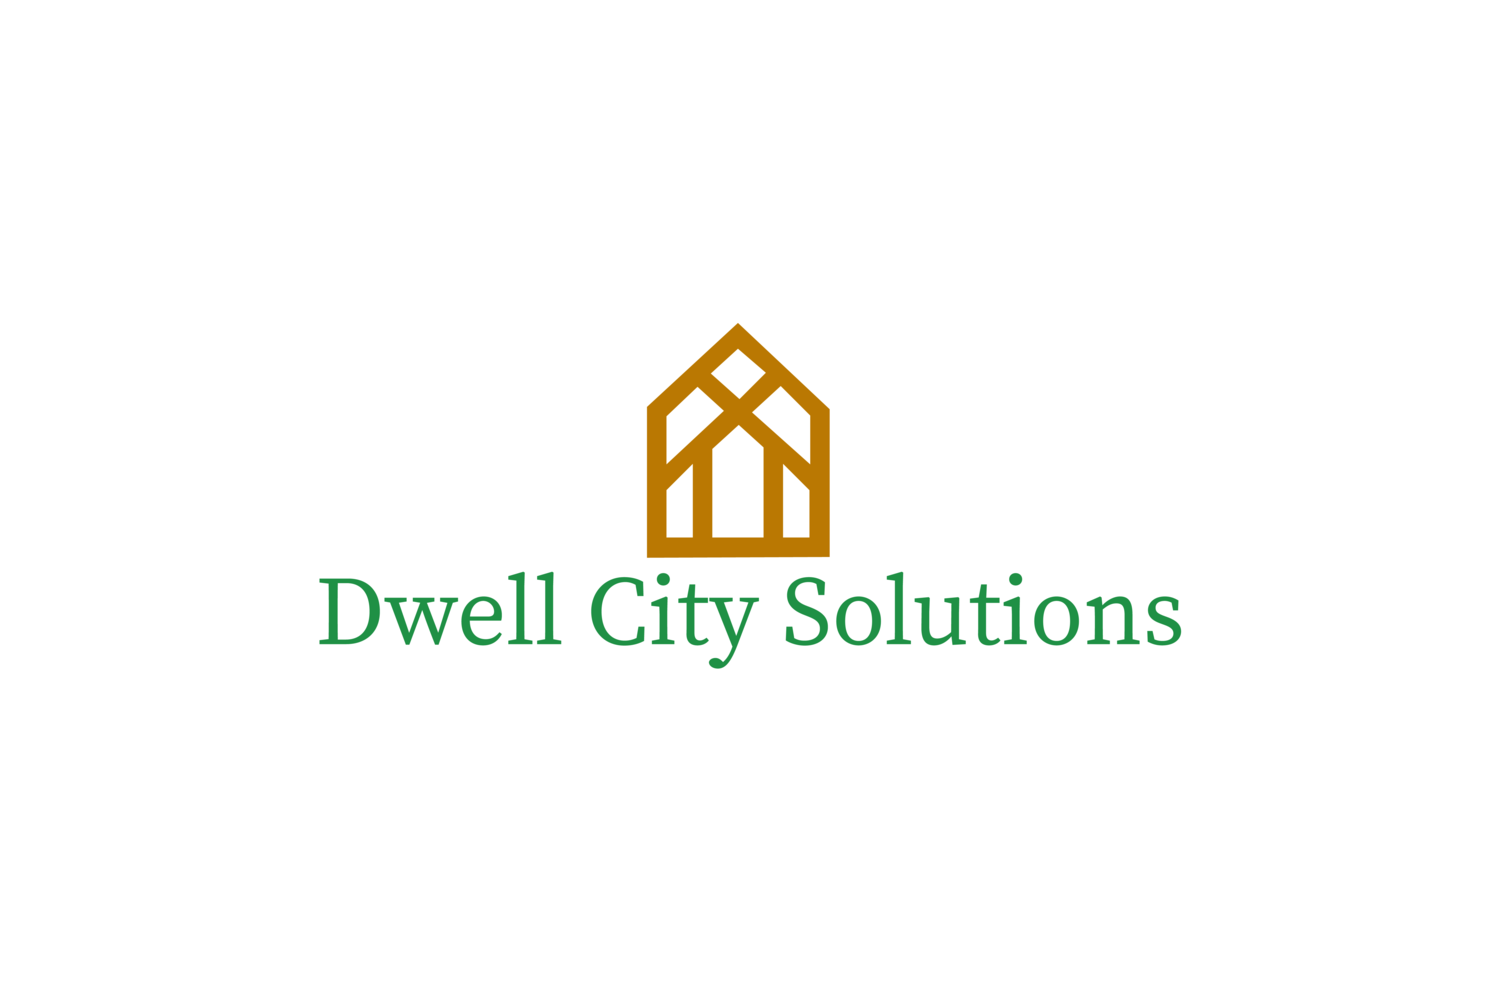 dwell city solutions